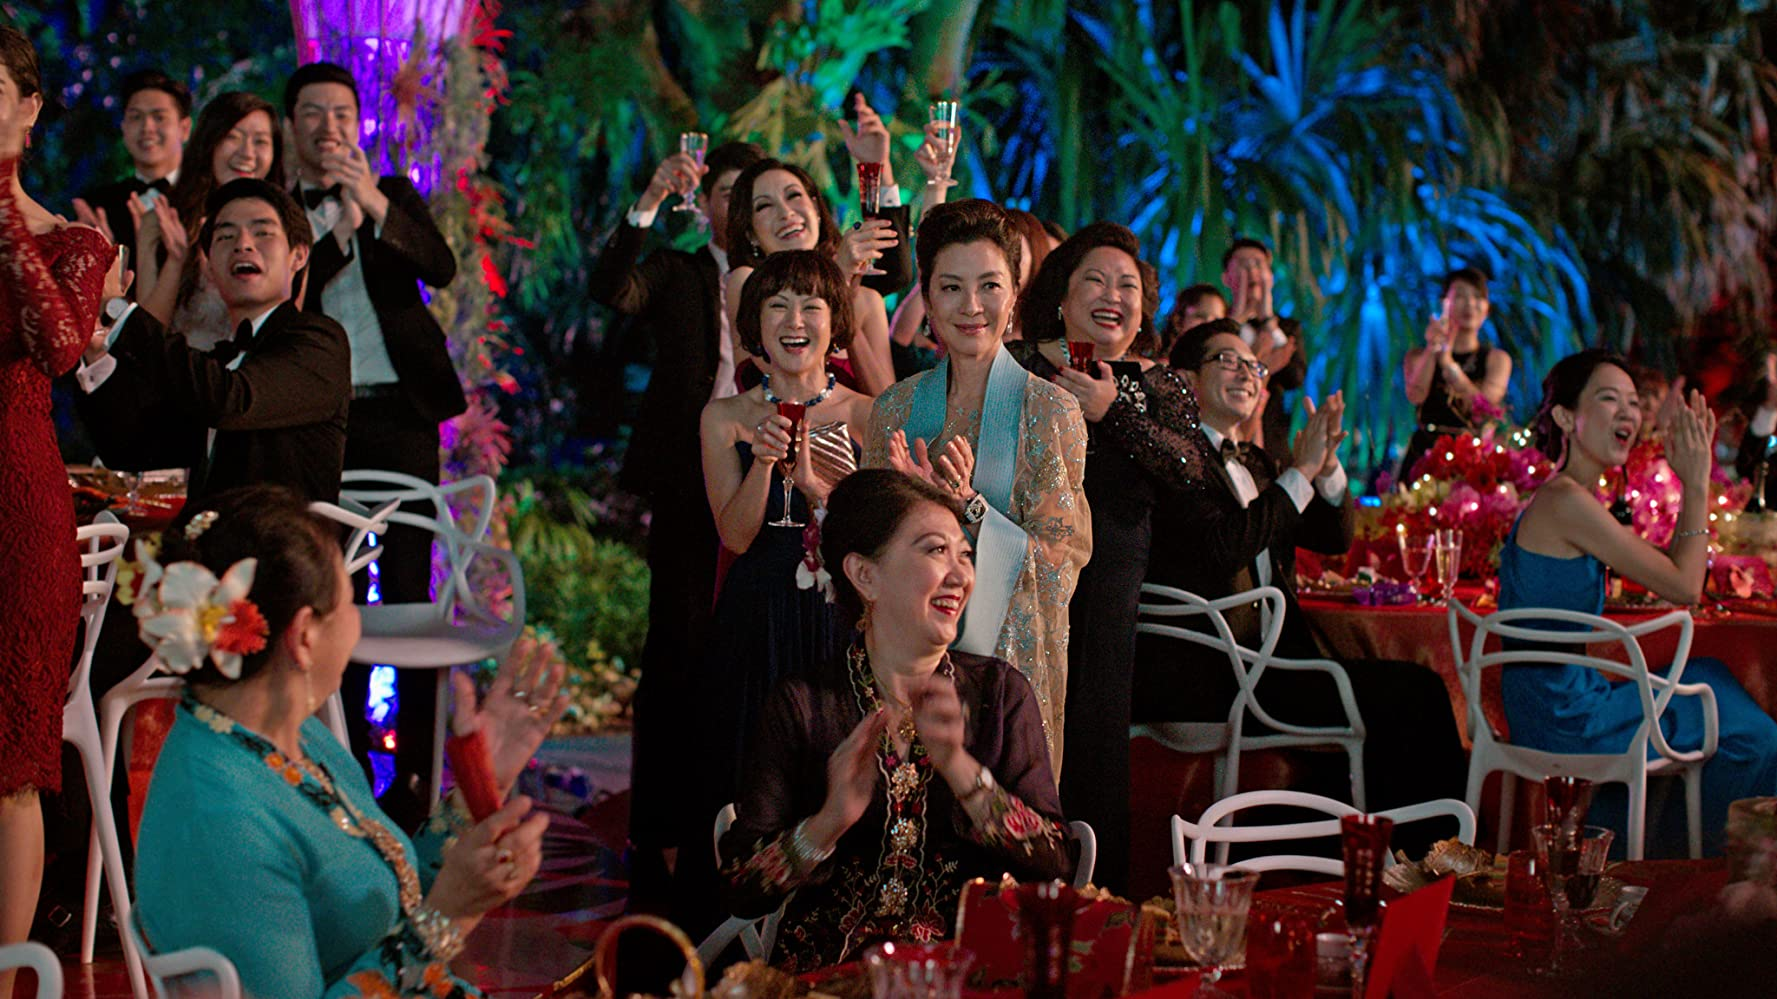 Michelle Yeoh in Crazy Rich Asians (2018)